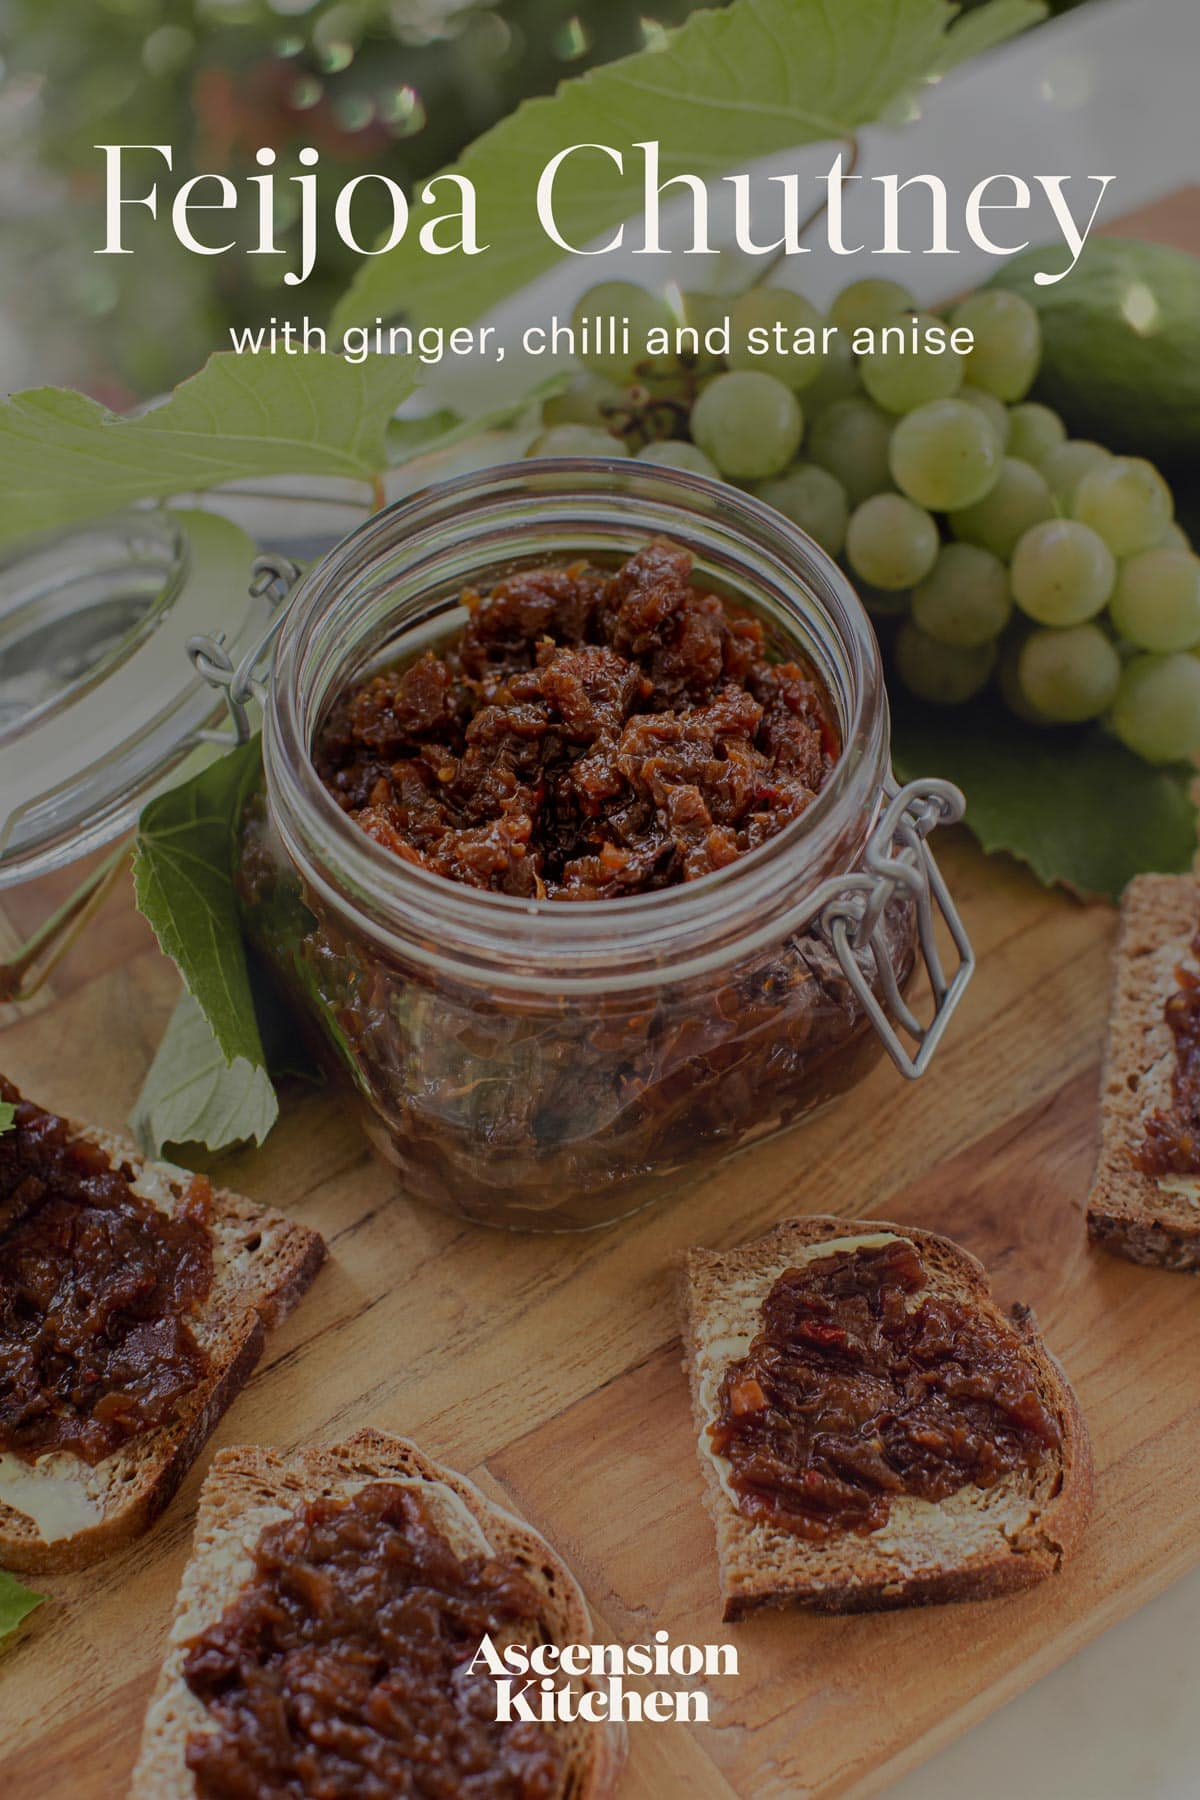 Pinterest graphic for this feijoa chutney recipe - featuring a close up of the chutney in an open jar surrounded by slices of rye and grapes, the recipe title printed over the top